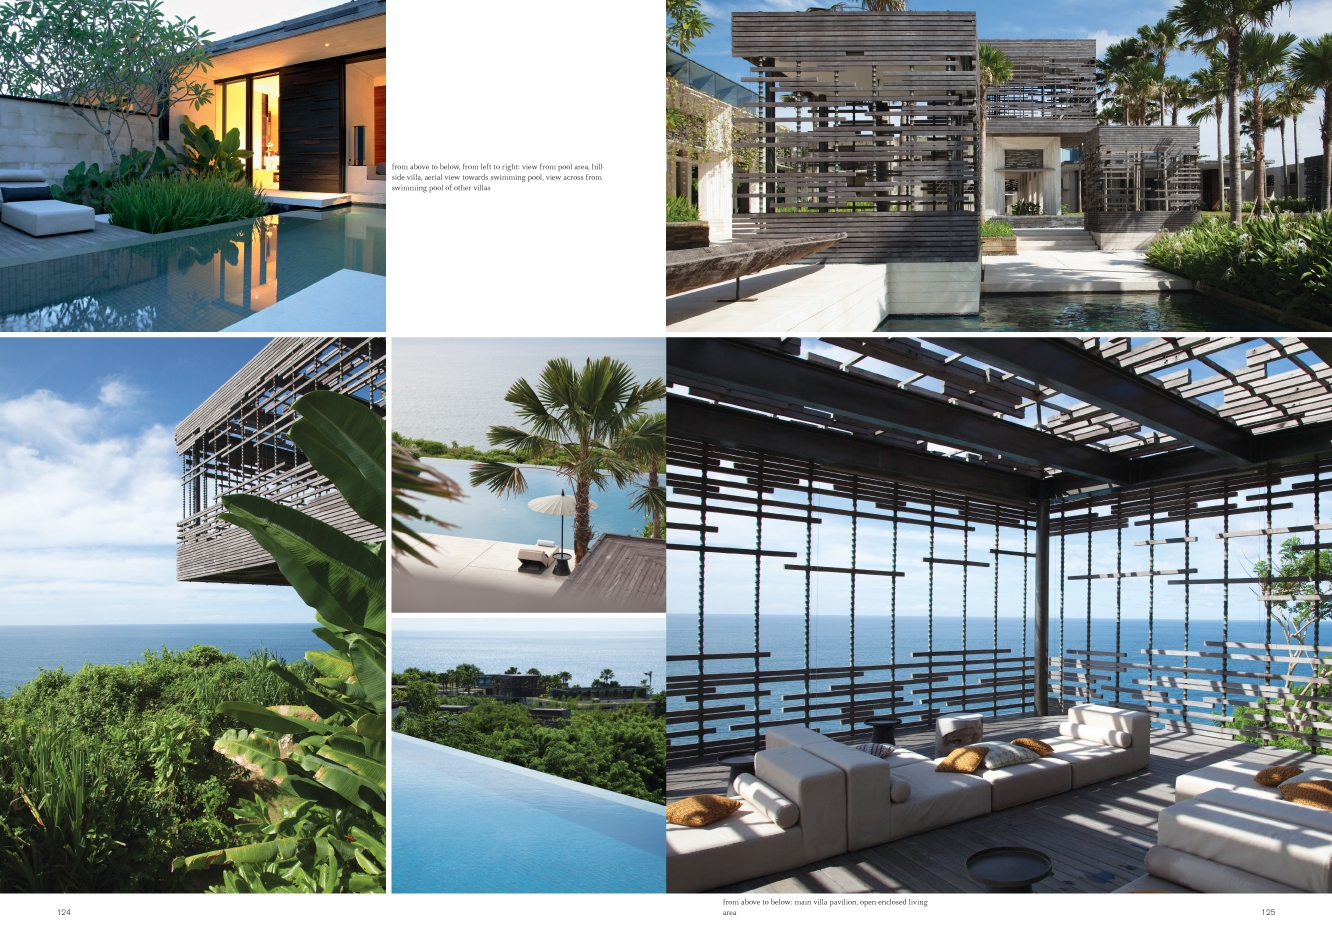 tropical houses: architecture | braun publishing